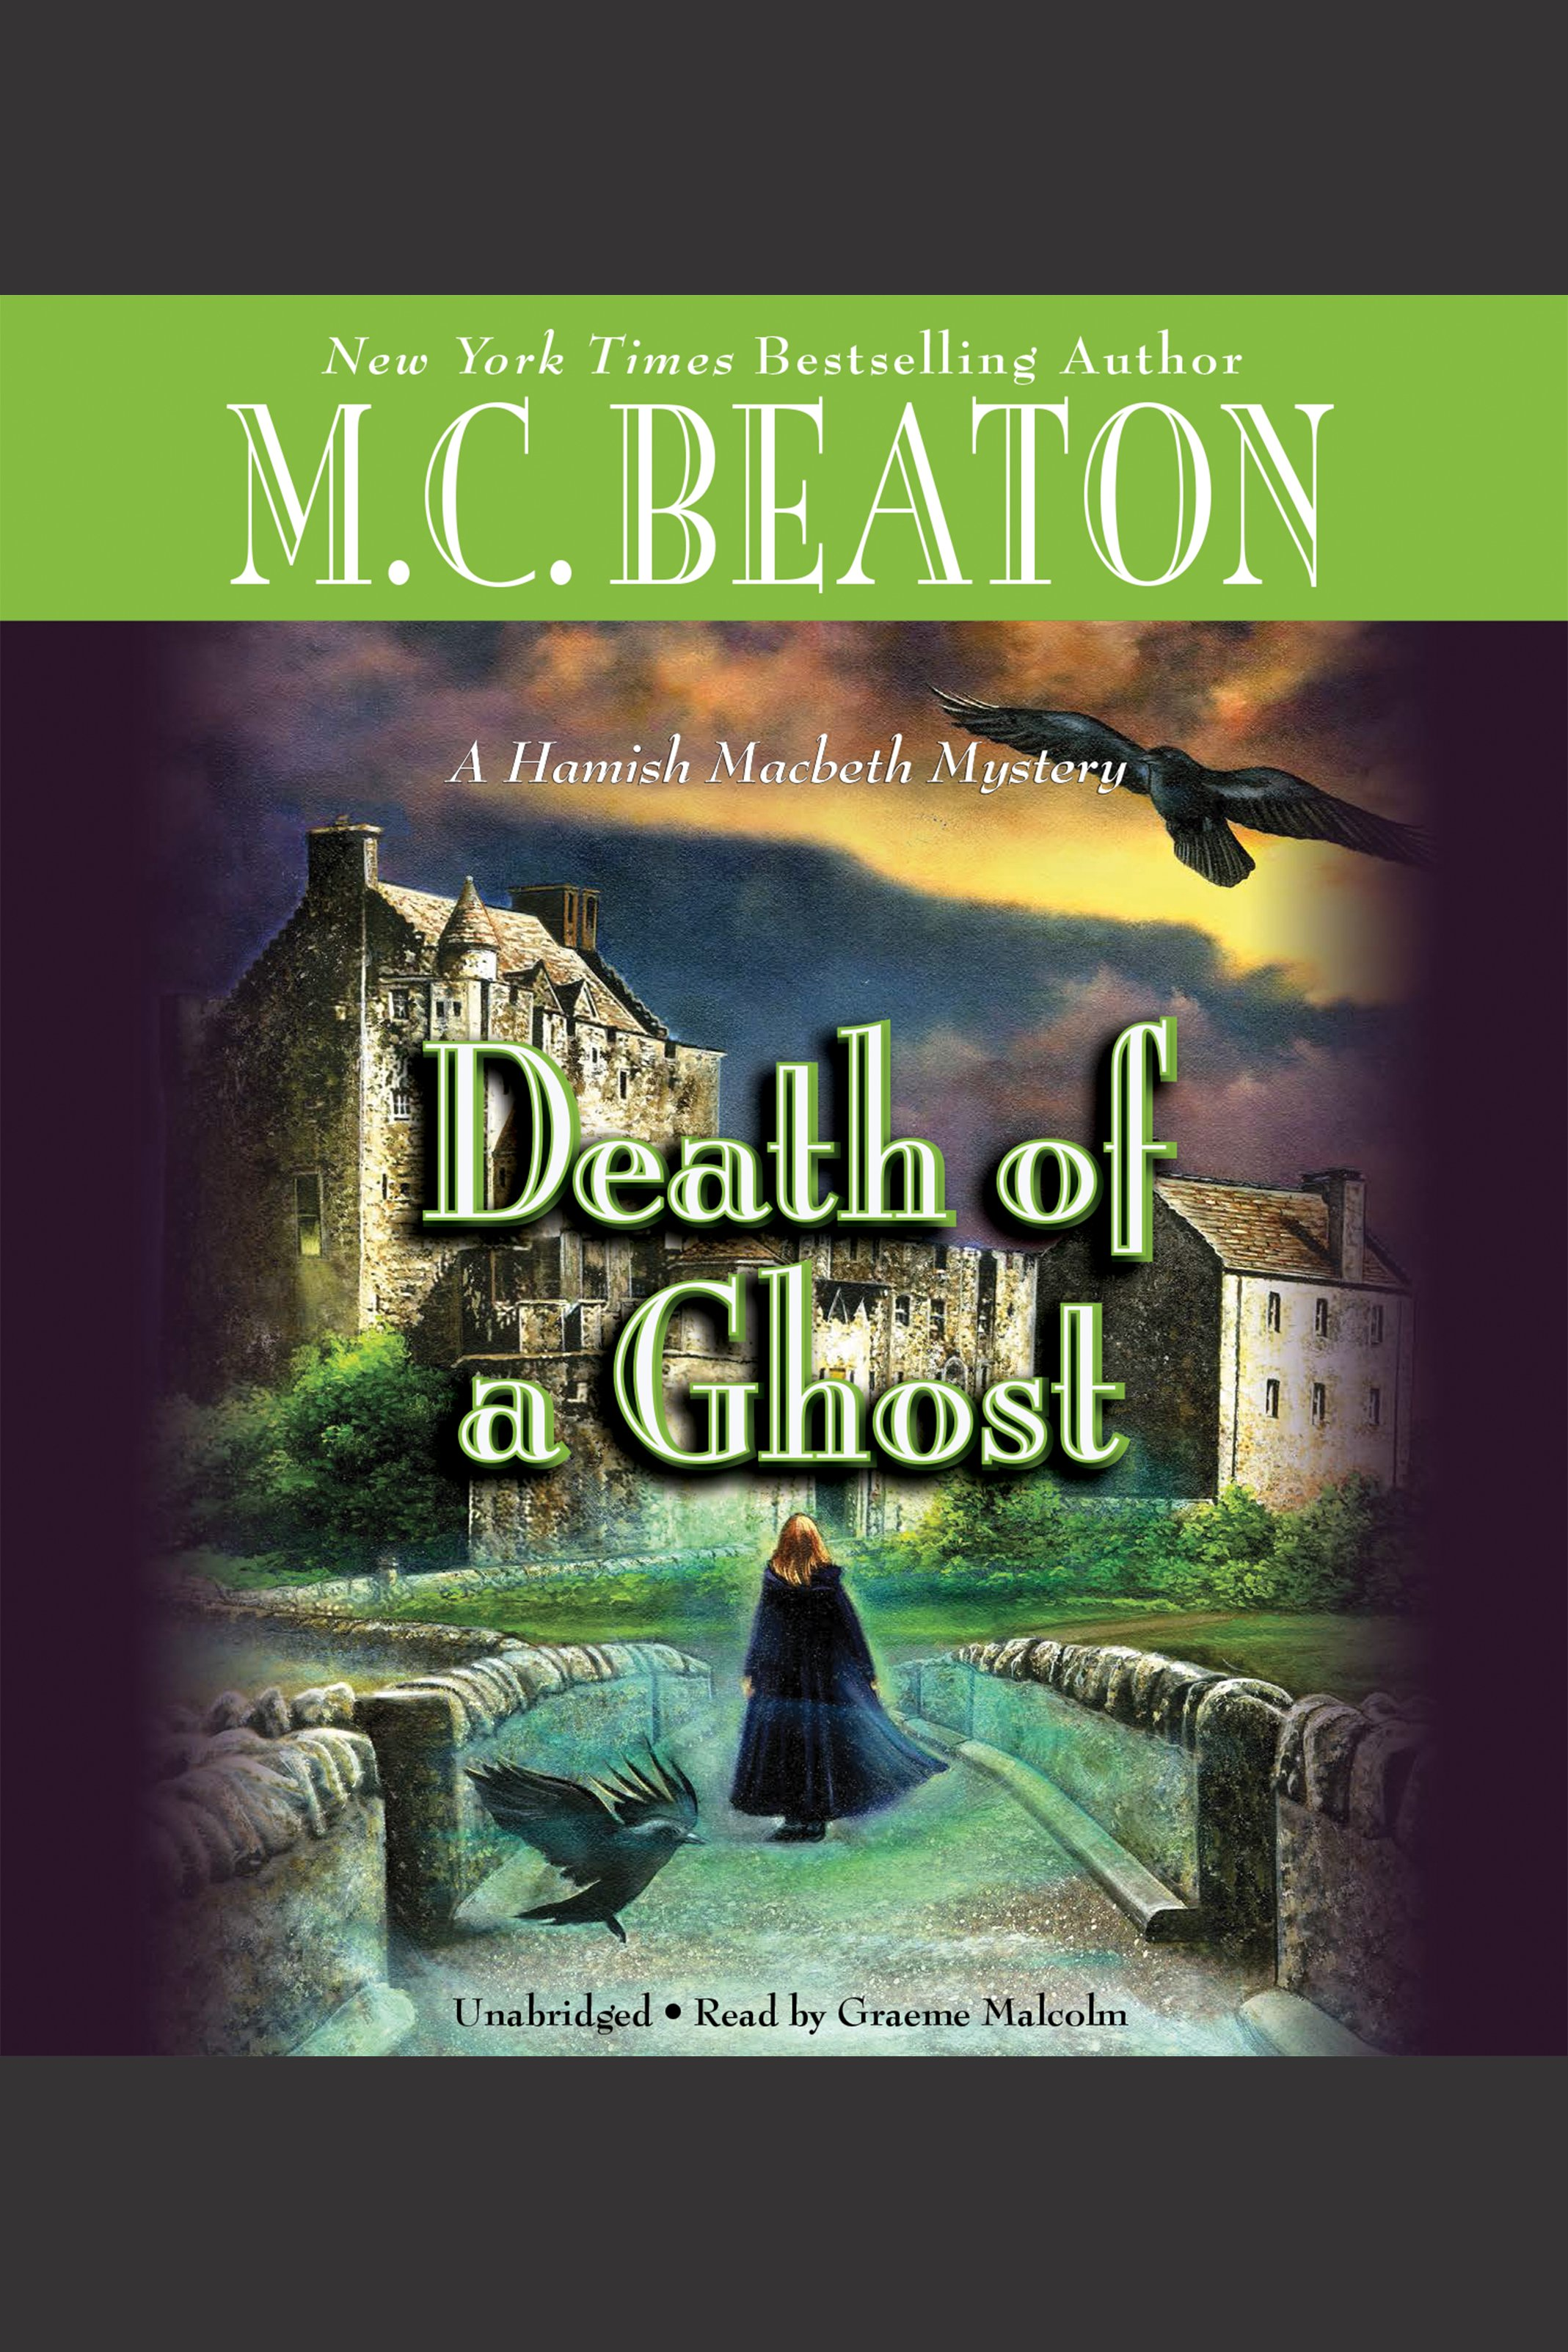 Death of a ghost cover image